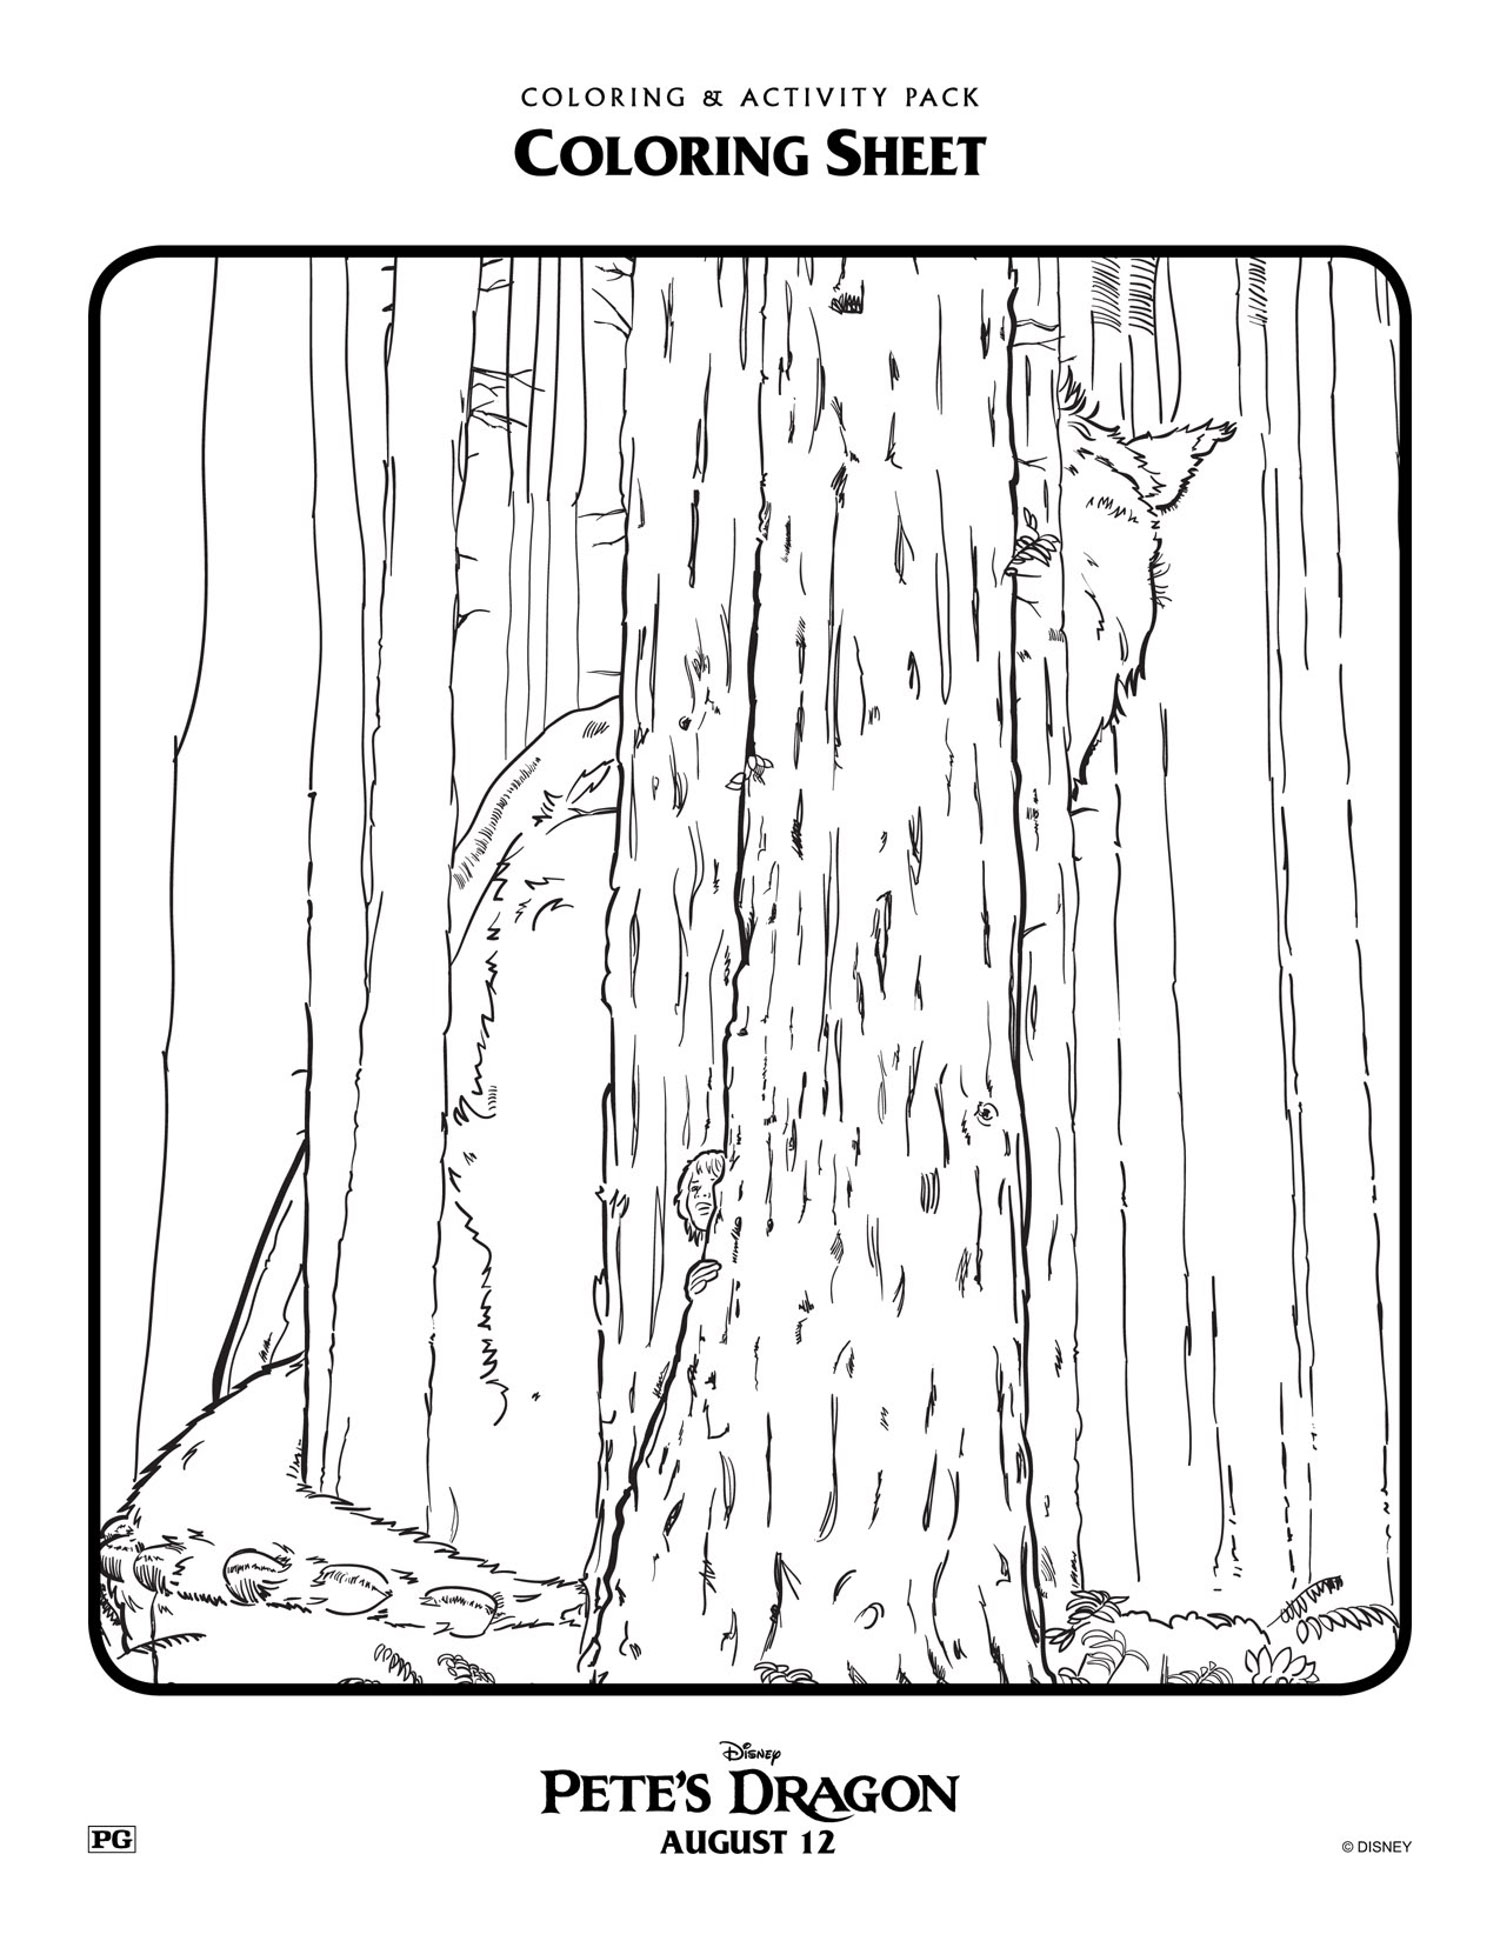 Pete's Dragon Disney coloring page for kids - Mommy Scene